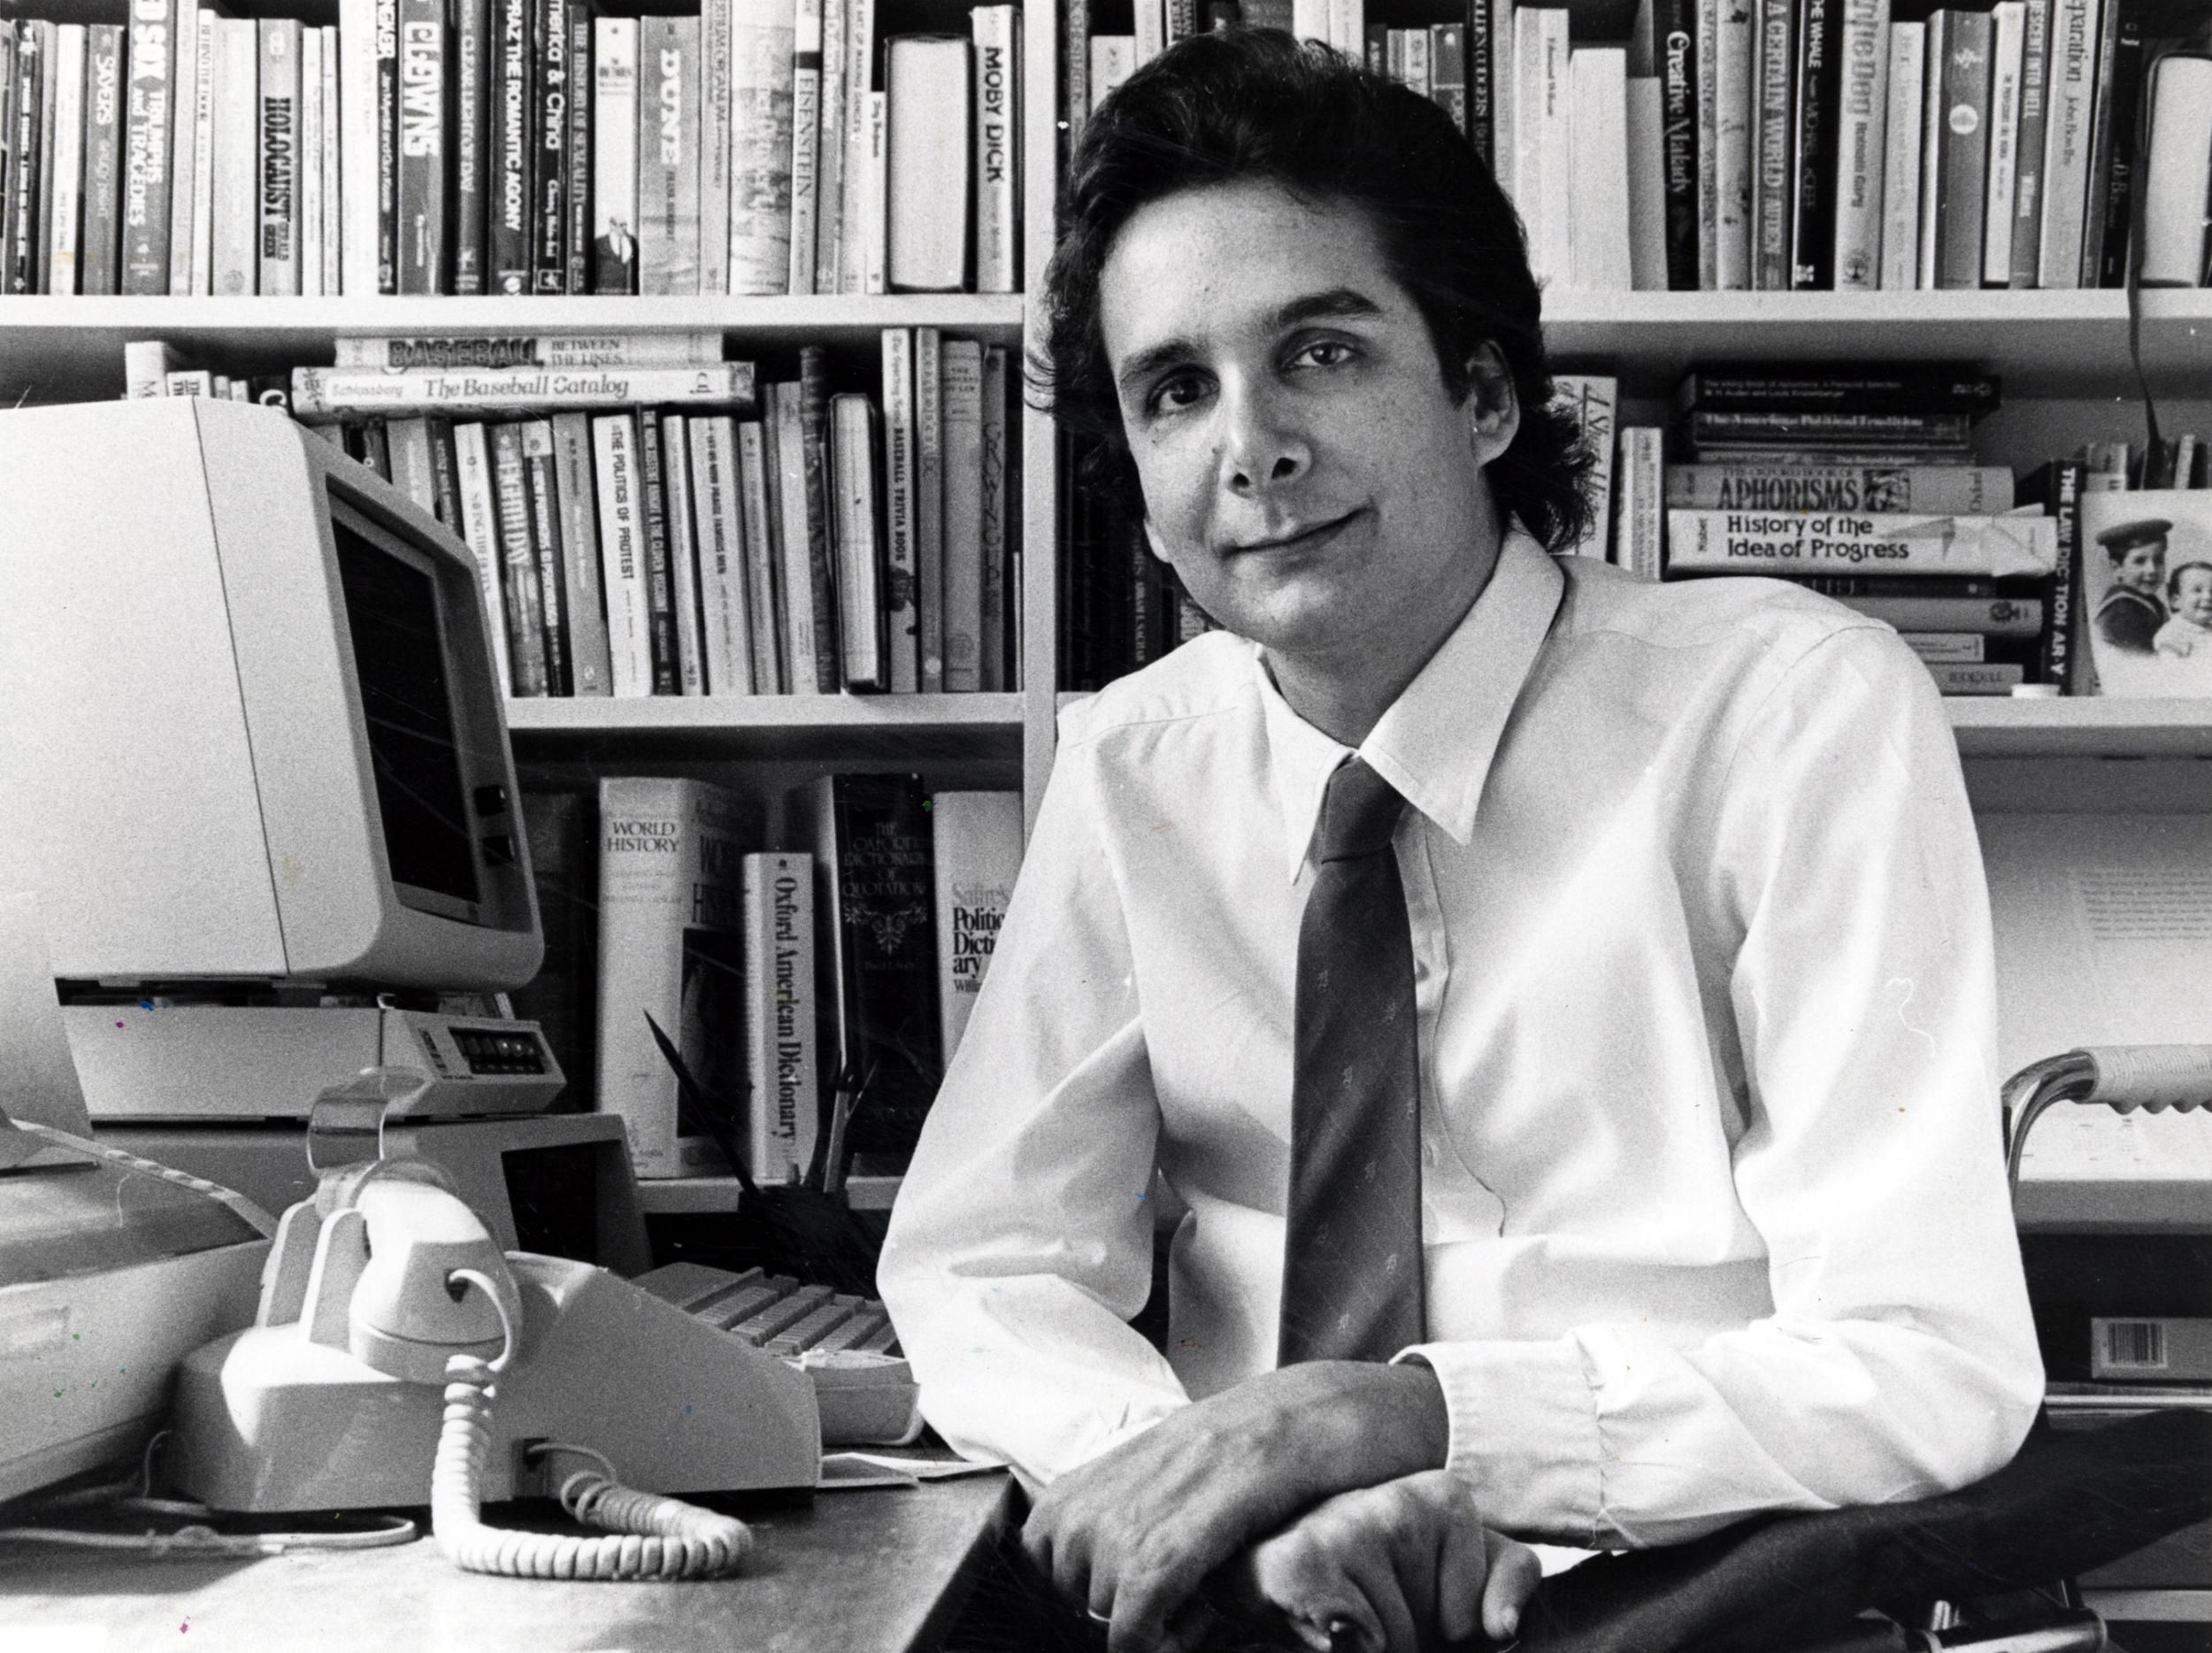 Charles Krauthammer dead: Columnist and Fox News contributor dies of cancer, aged 68